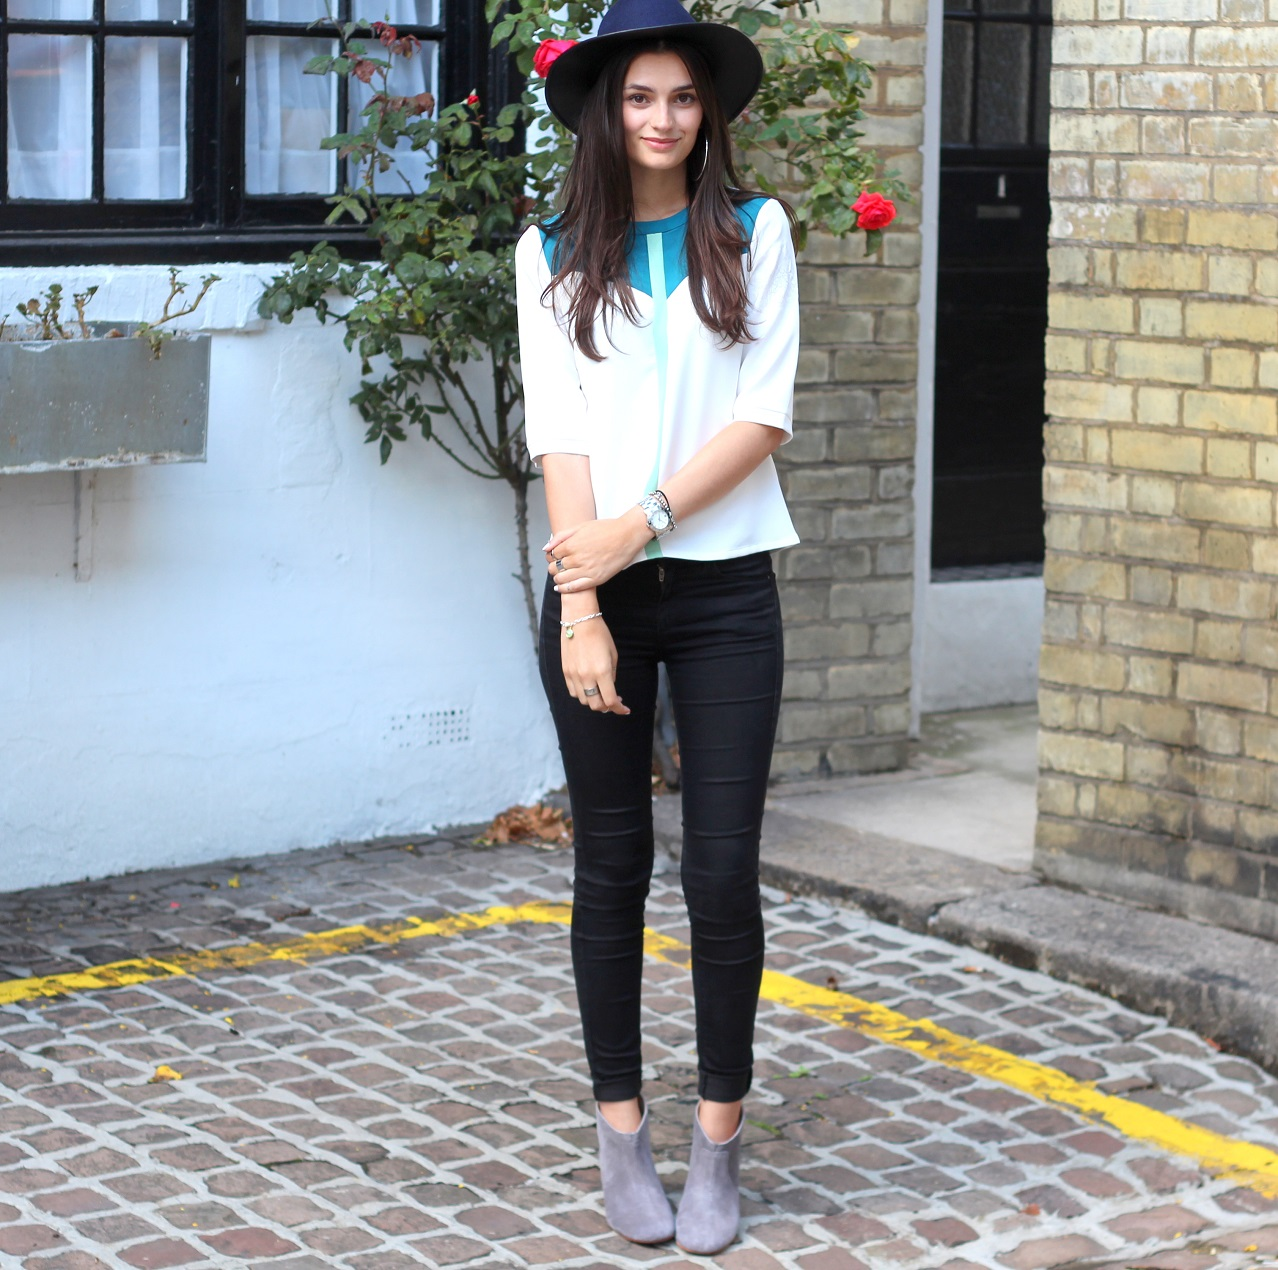 peexo fashion blogger wearing smart casual outfit for afternoon tea